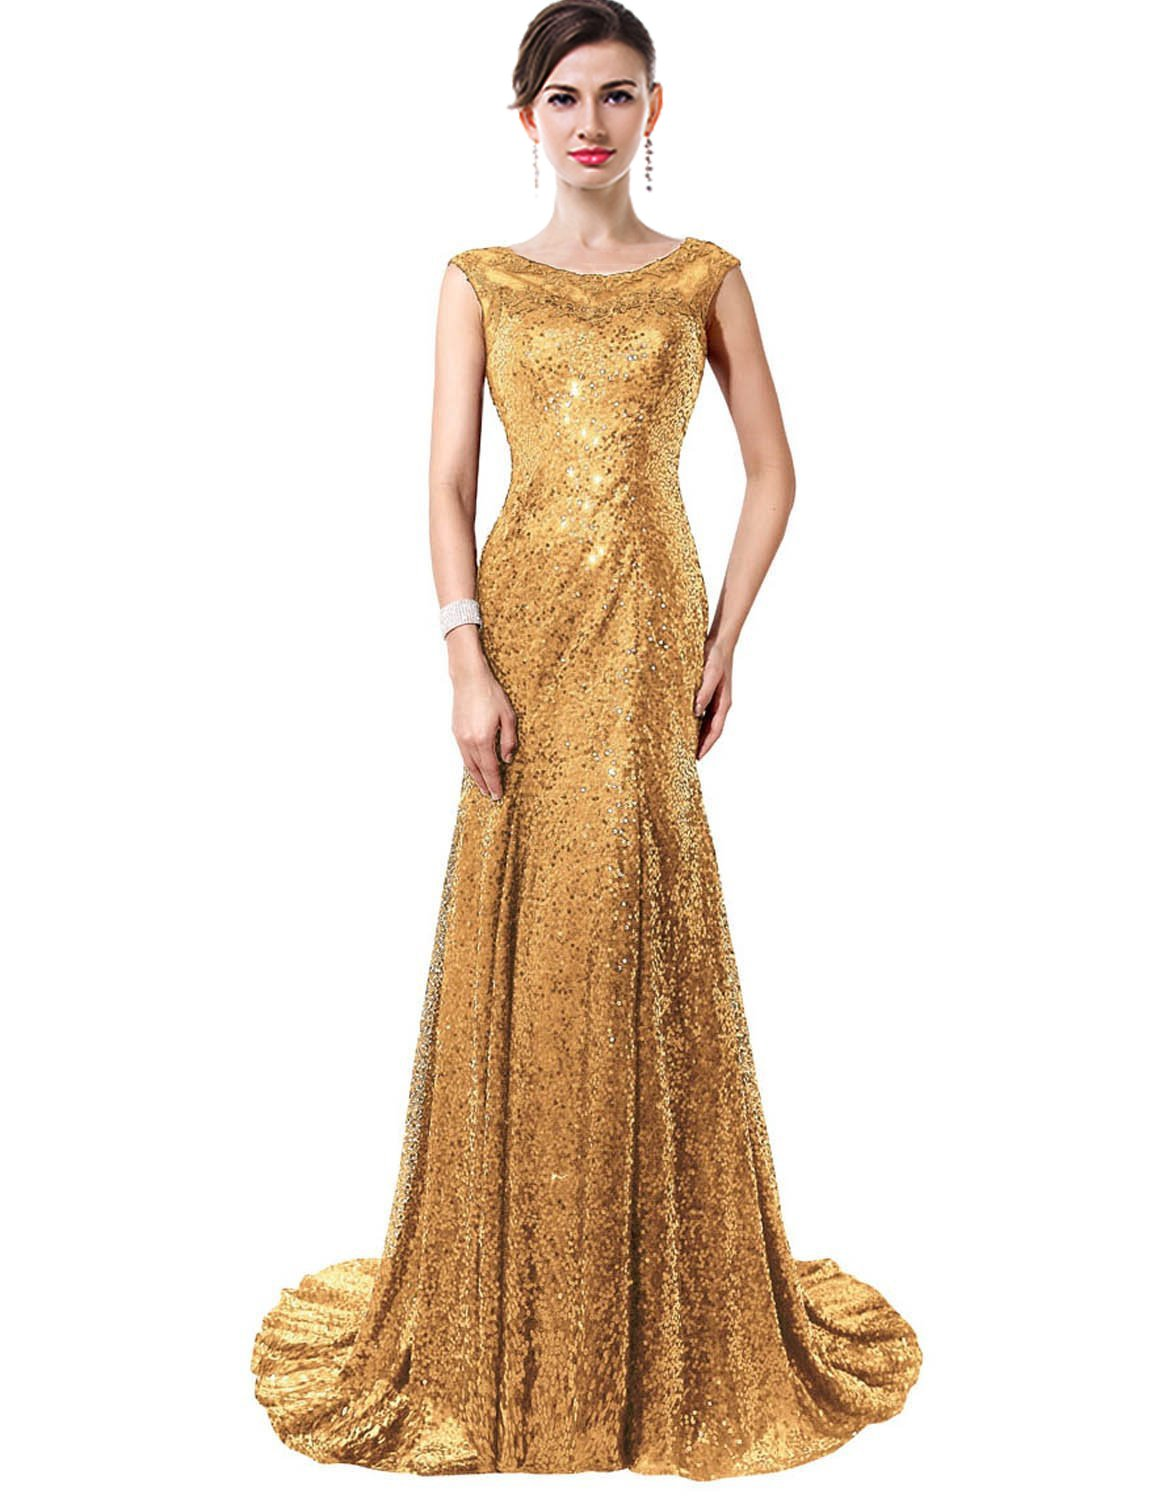 ThaliaDress Sequin Glitter Formal Evening Prom Gown Wedding Party Dress T027LF Gold US18W